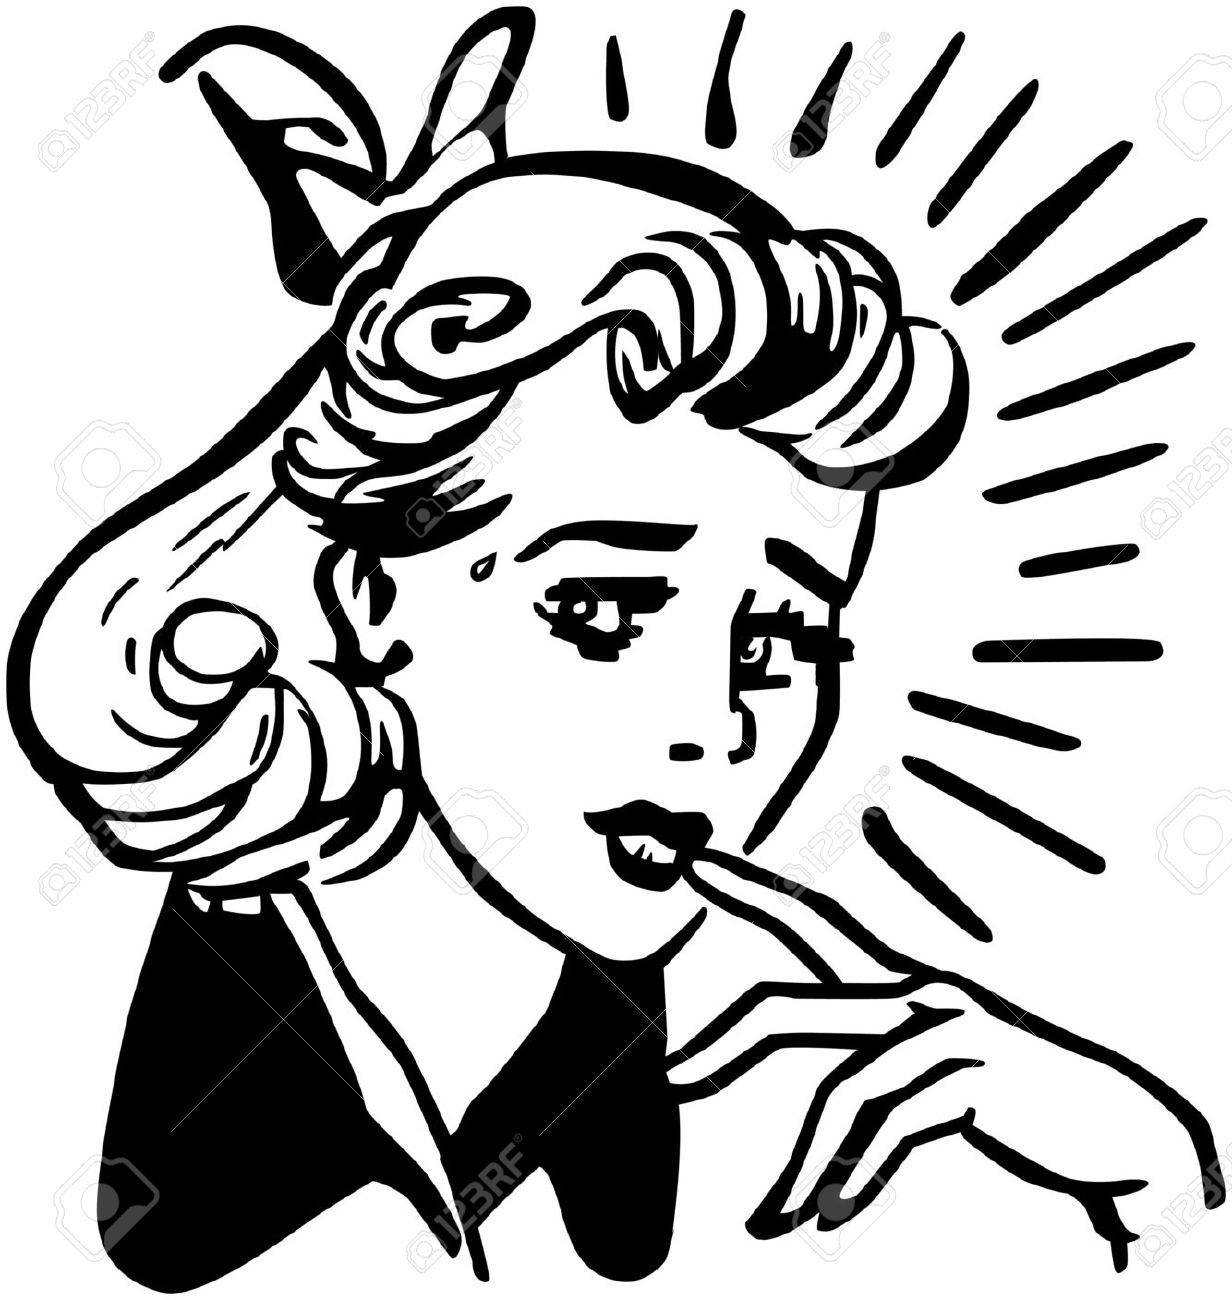 Worried women clipart svg royalty free library Worried woman clipart 6 » Clipart Portal svg royalty free library